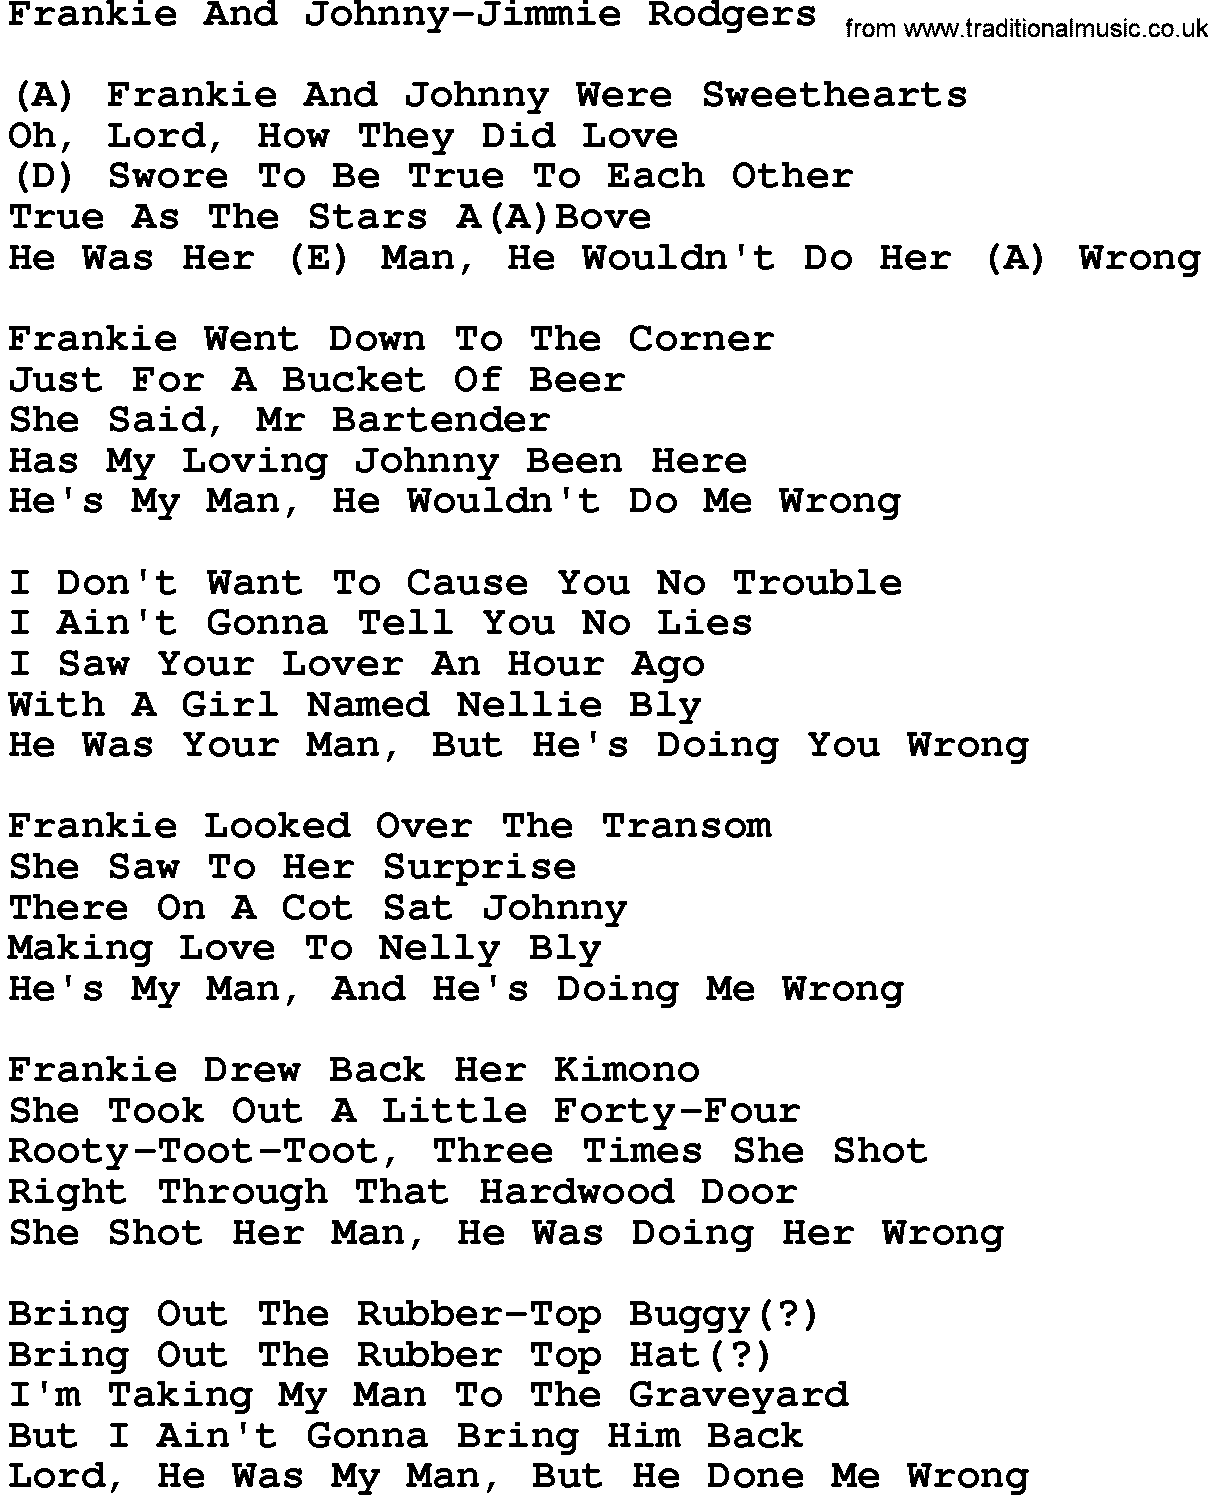 Country Musicfrankie And Johnny Jimmie Rodgers Lyrics And Chords